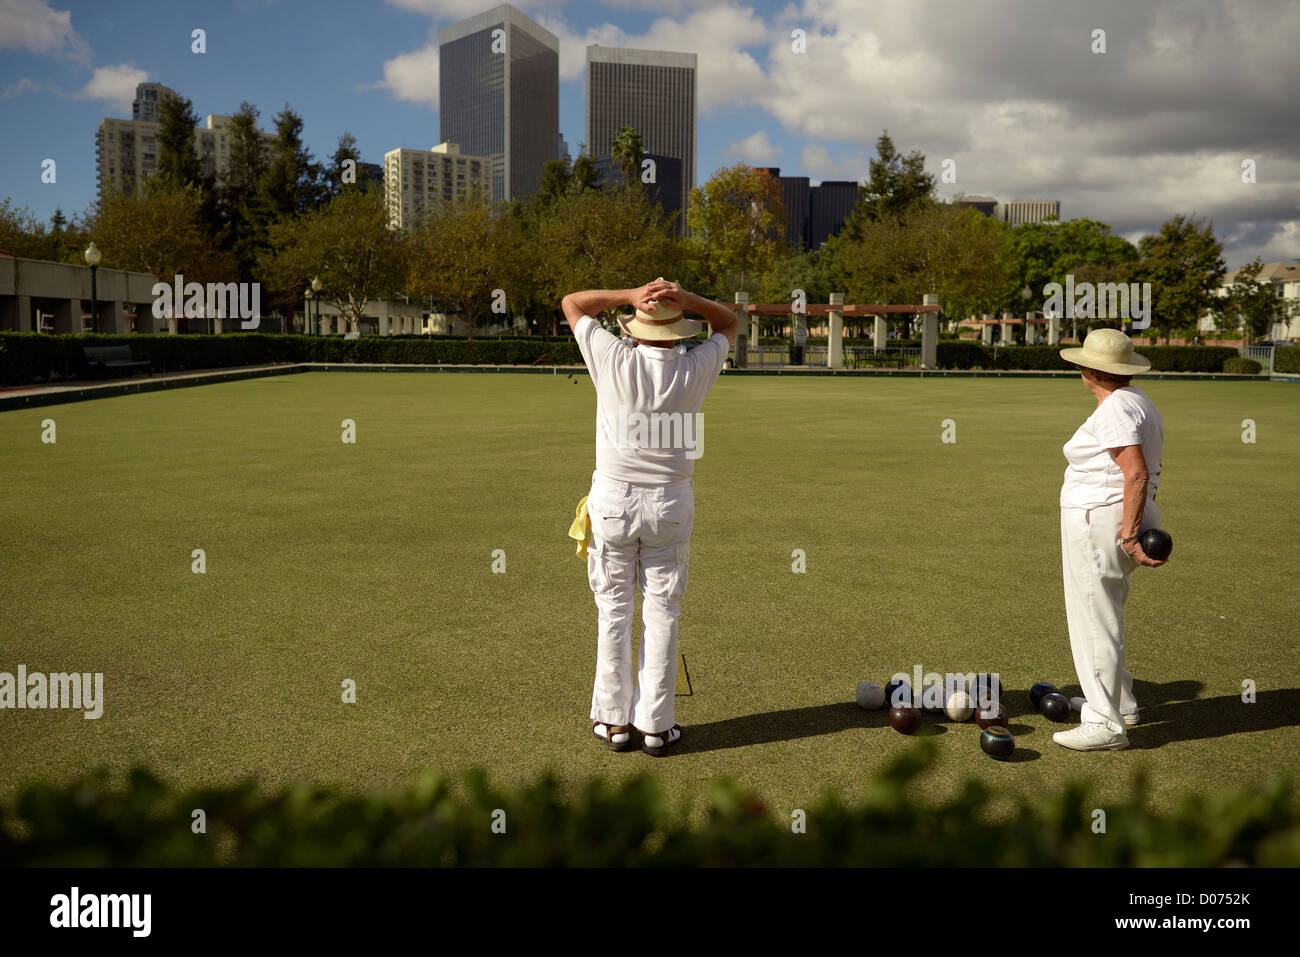 beverly hills lawn bowls usa - Stock Image